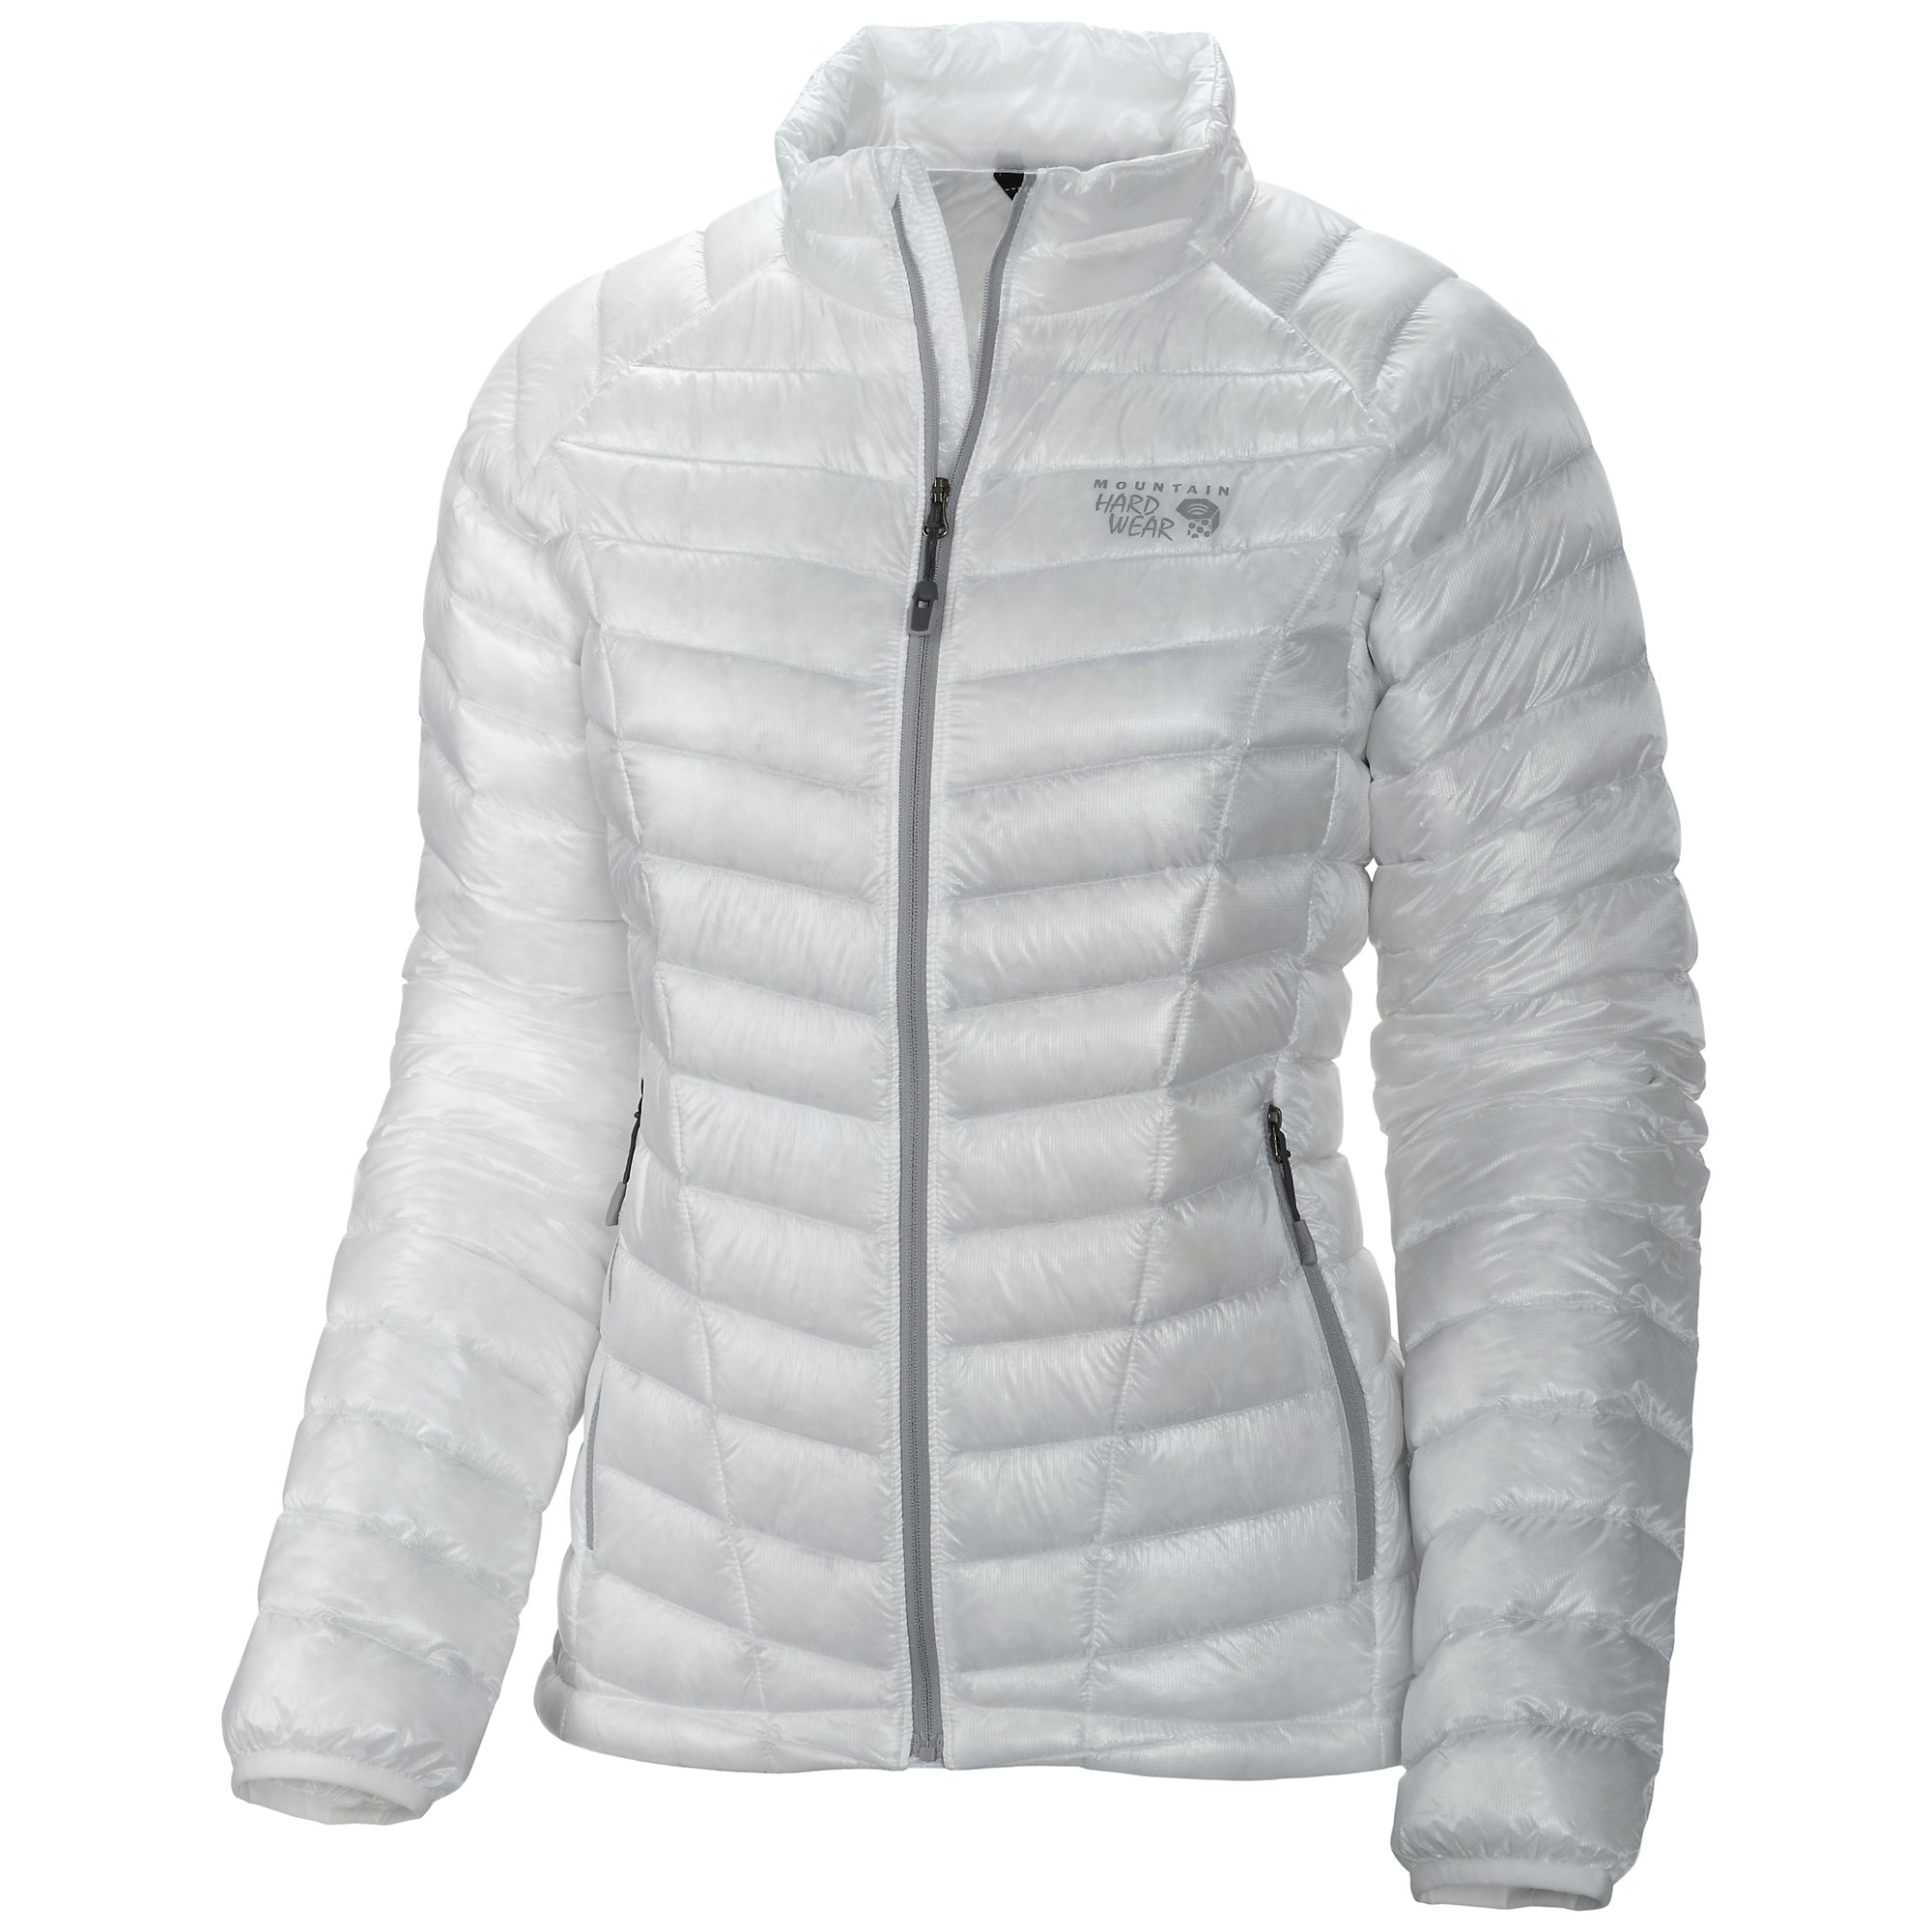 Mountain Hardwear Whisper Peak Down Jacket